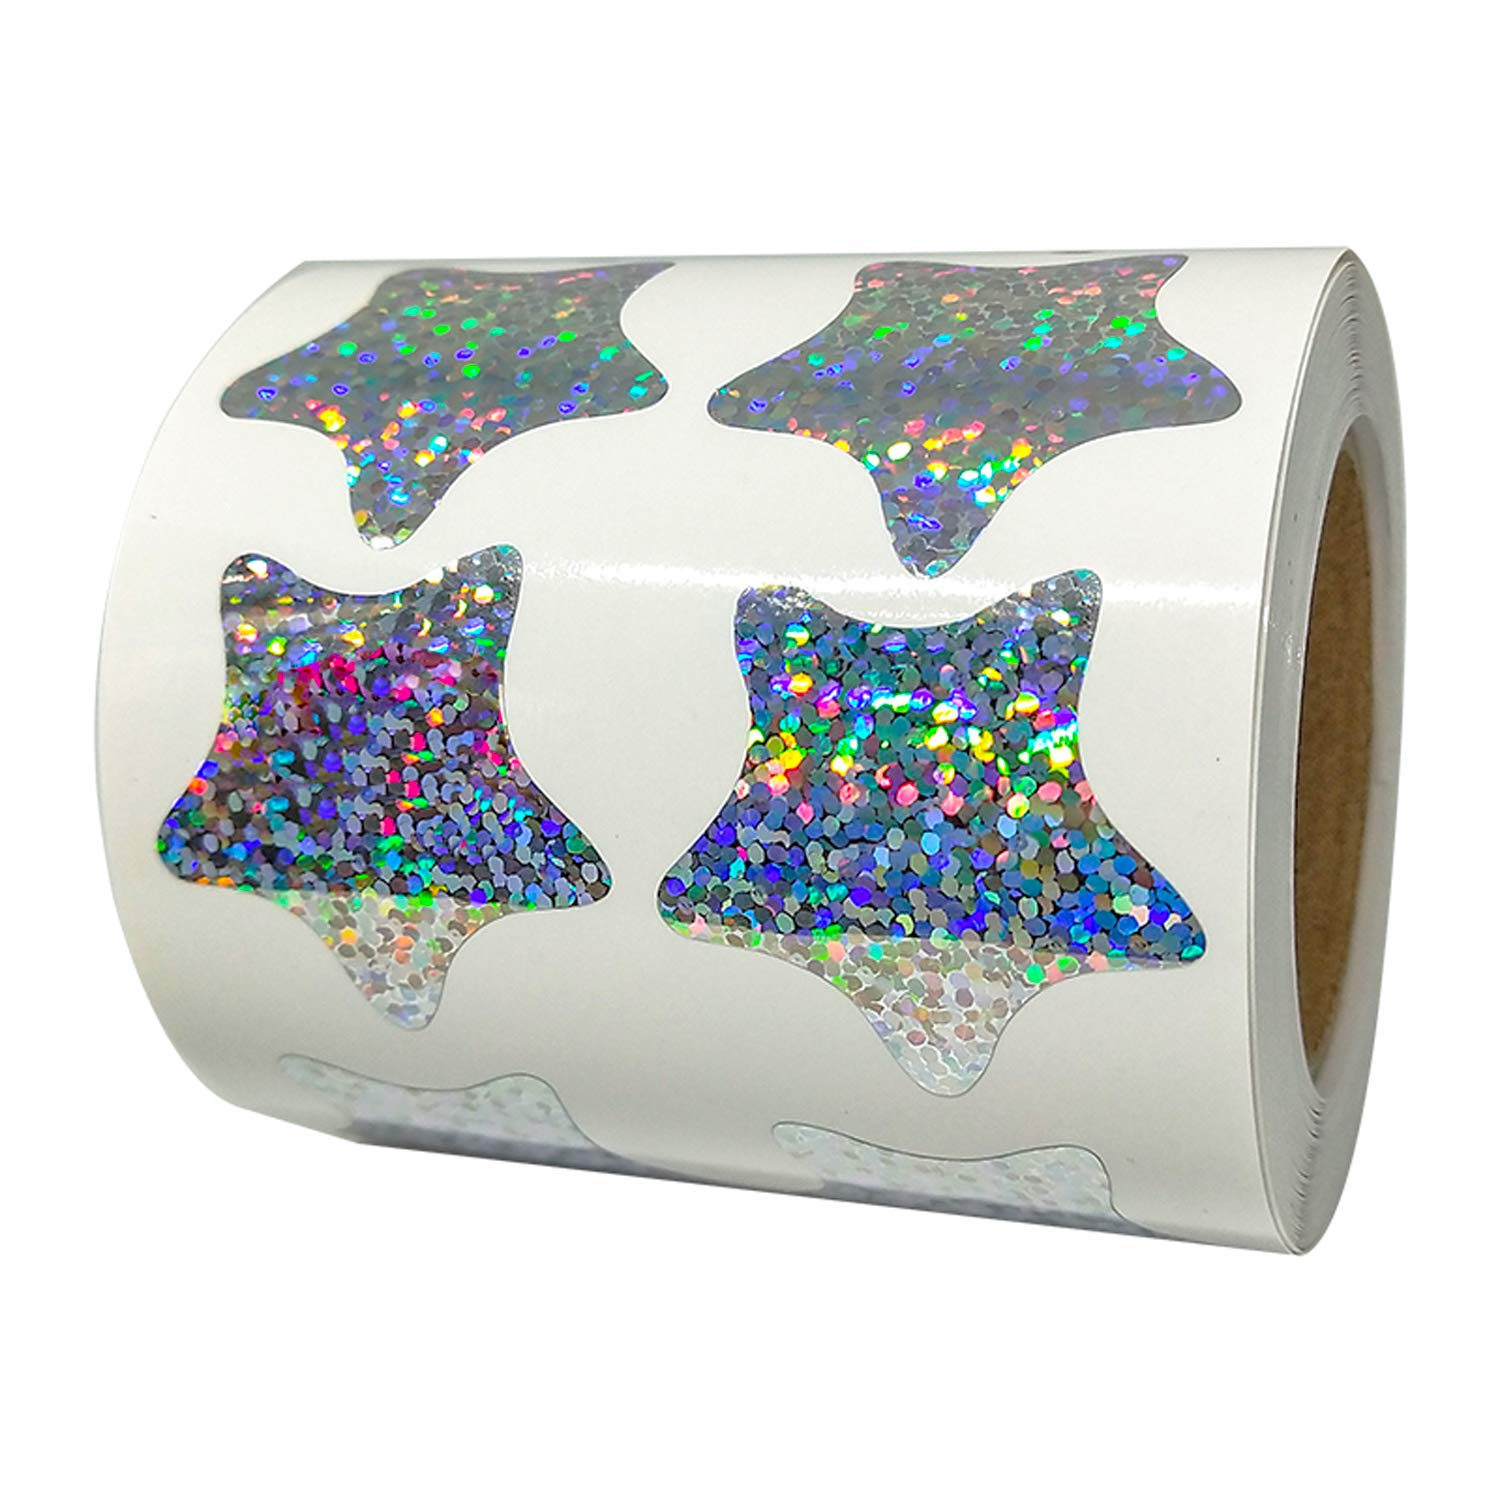 1.2 Inch Glitter Foil Metallic Star Shape Stickers Shiney Sparkly - 500 Smallpox Class Stars Sticker Roll Labels - Self-adhesive Scrapbooking Party Favors Teacher Supplies (Glitter star stickers) by Well Tile